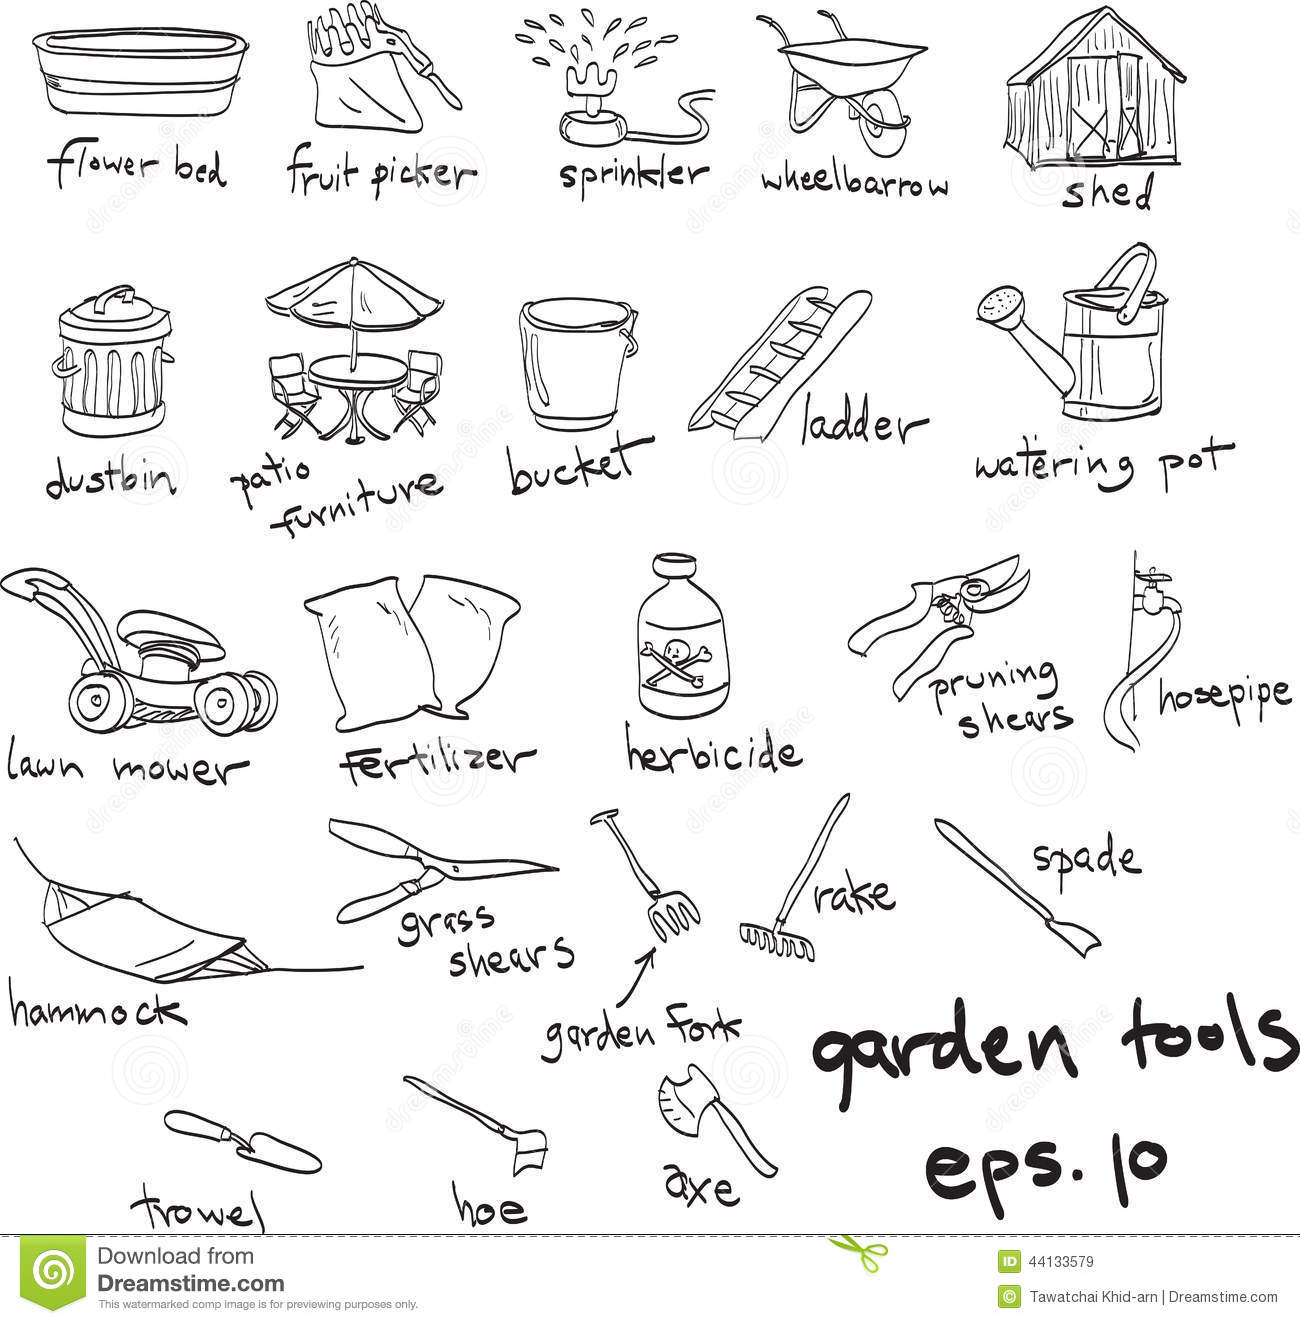 Hand drawn garden tools doodles stock vector for Gardening tools drawing with names